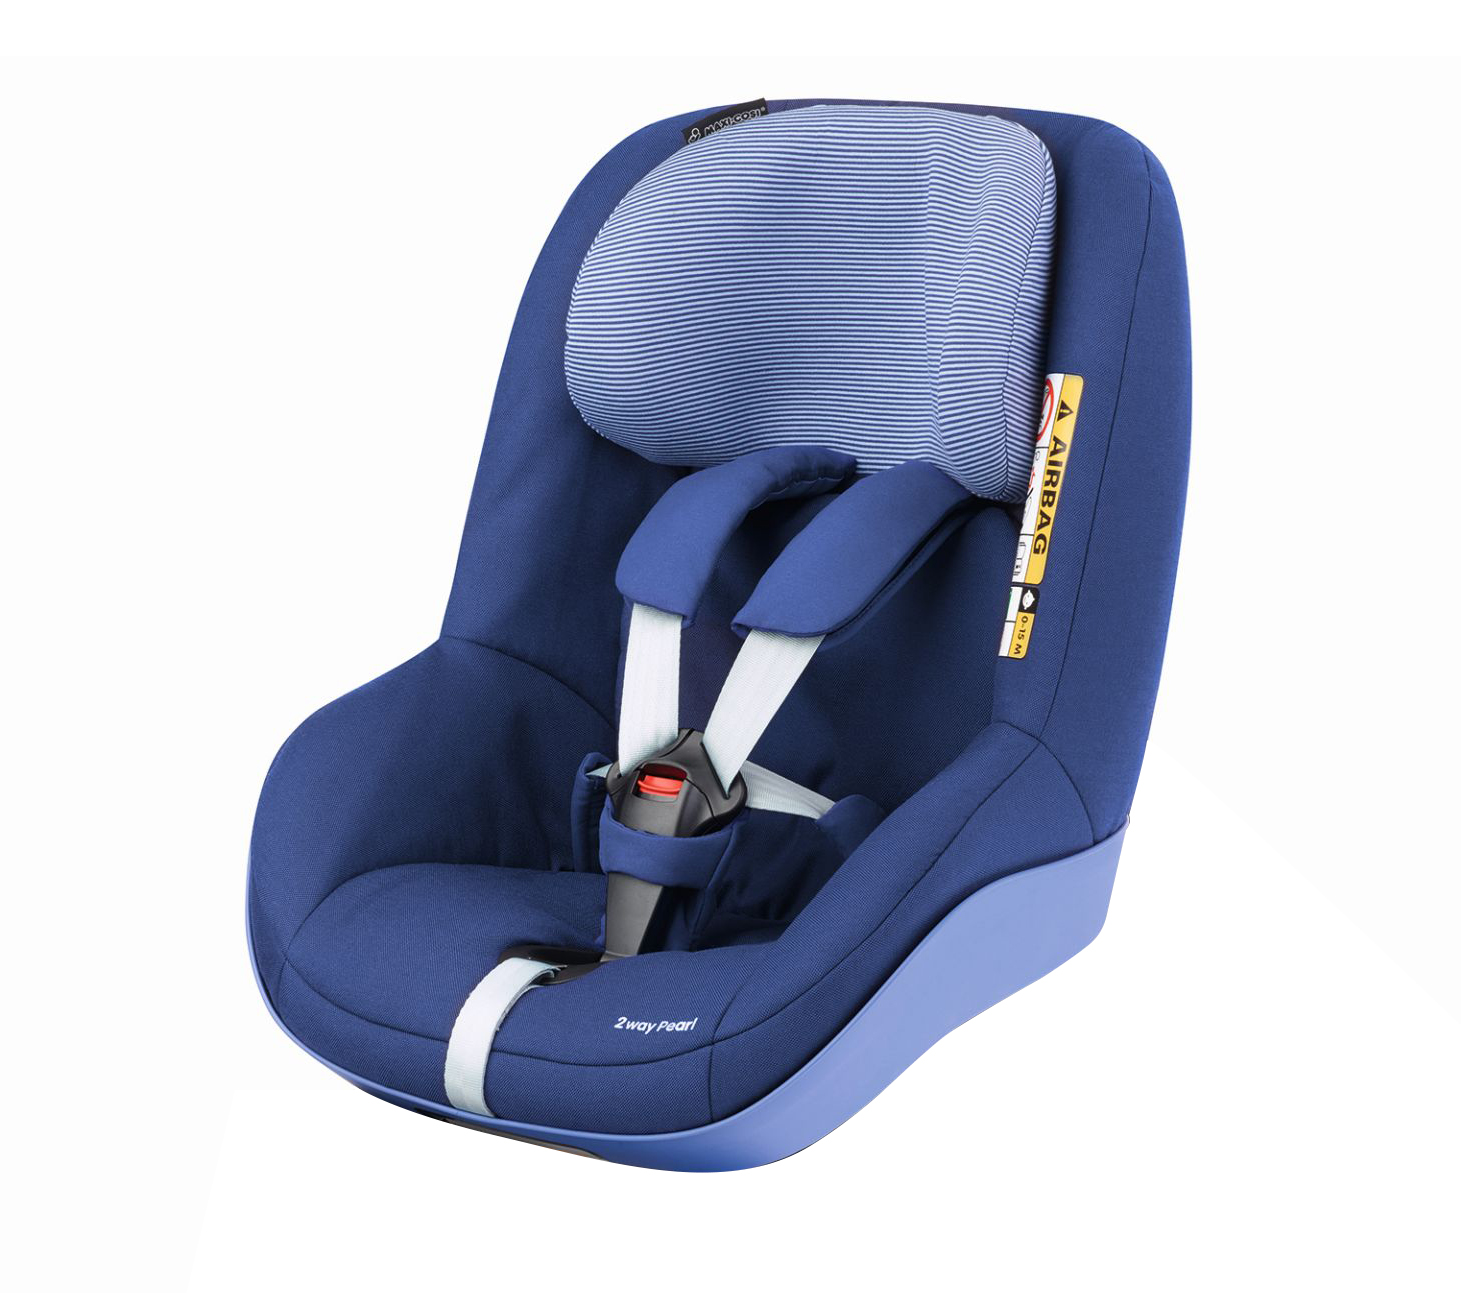 maxi cosi safety seat 2way pearl 2017 river blue buy at kidsroom car seats. Black Bedroom Furniture Sets. Home Design Ideas